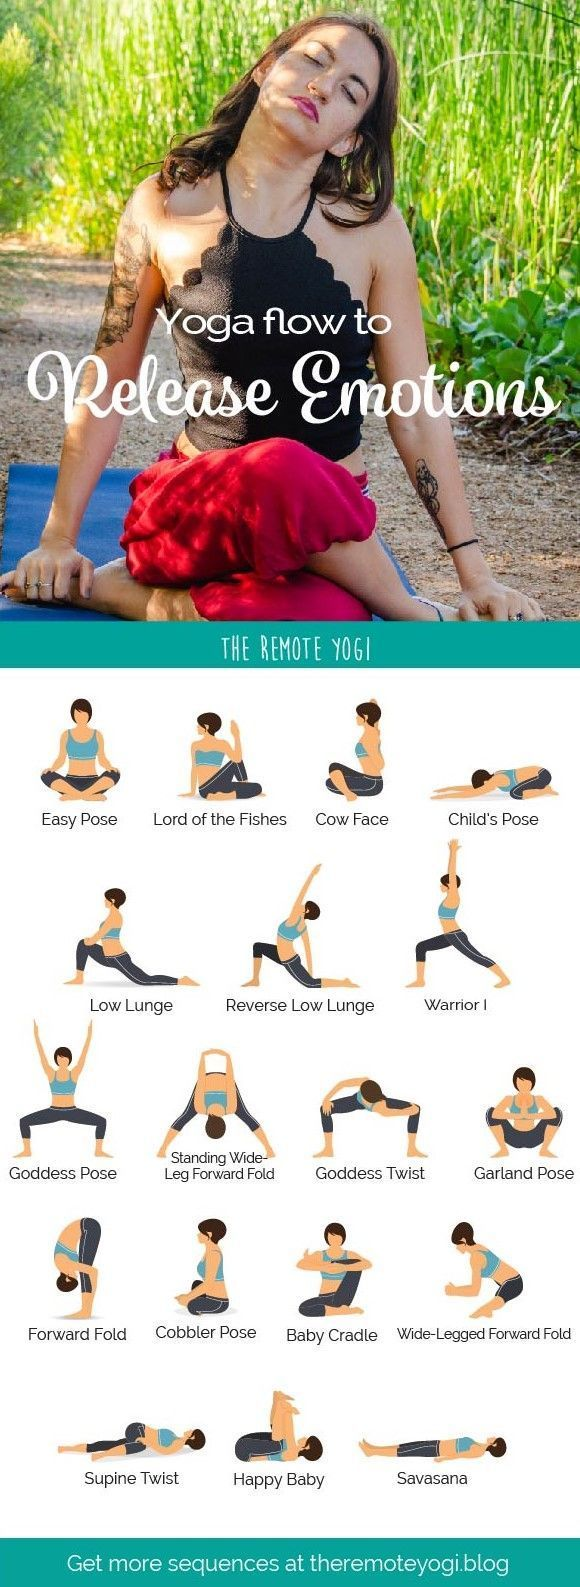 to Release Emotions - Printable Yoga PDF Do you ever feel numb and like you have completely blocked out your emotions? Chances are, you've learned coping mechanisms to quiet your emotions when you need to be in control. Problem is, when we practice this too often, we start to numb out. Today's yoga practice is to help you open and release emot